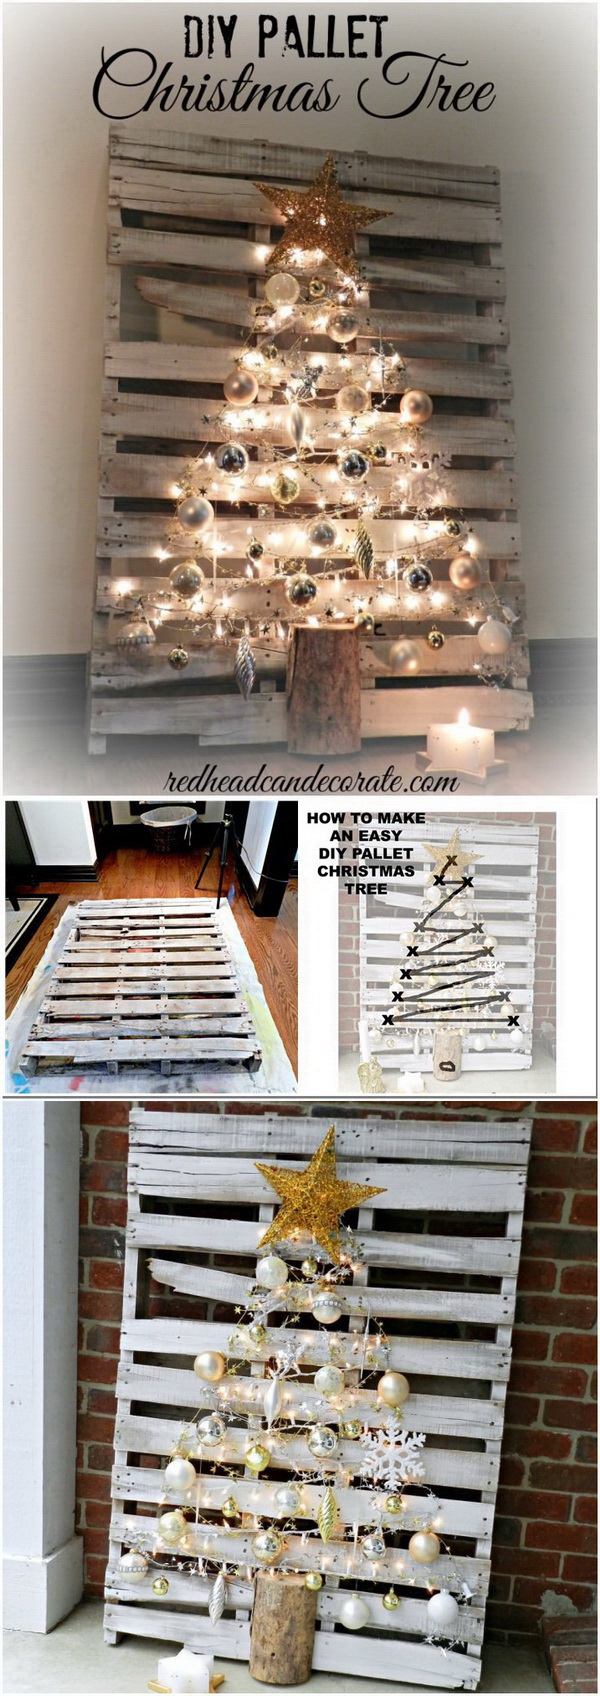 55 Rustic Farmhouse Inspired Diy Christmas Decoration Ideas For Creative Juice,6 Bedroom Single Story Simple 5 Bedroom House Plans